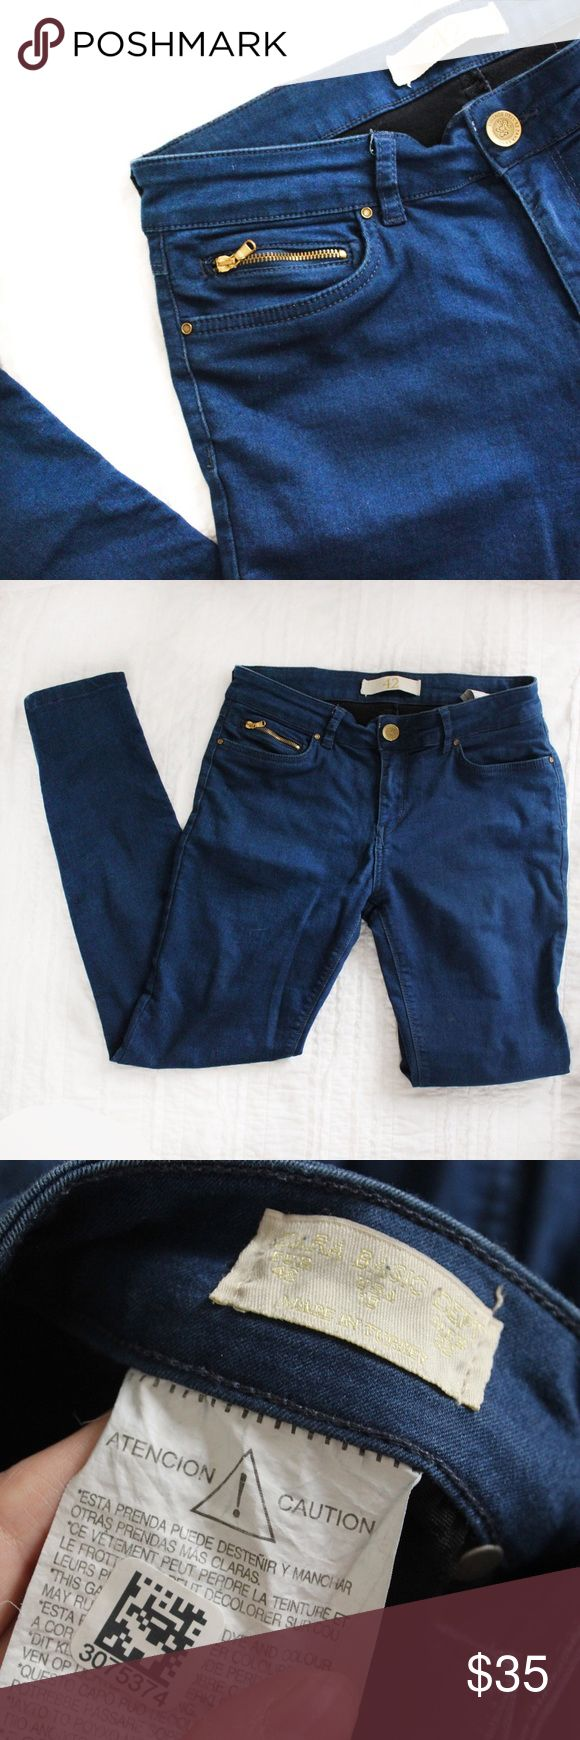 Zara Skinny Dark Wash Jeans Zara bright blue jeans with gold accents.  Fits true to size.  In gently used good condition.  Measurements available upon request.  All orders ship same or next business day! Zara Jeans Skinny